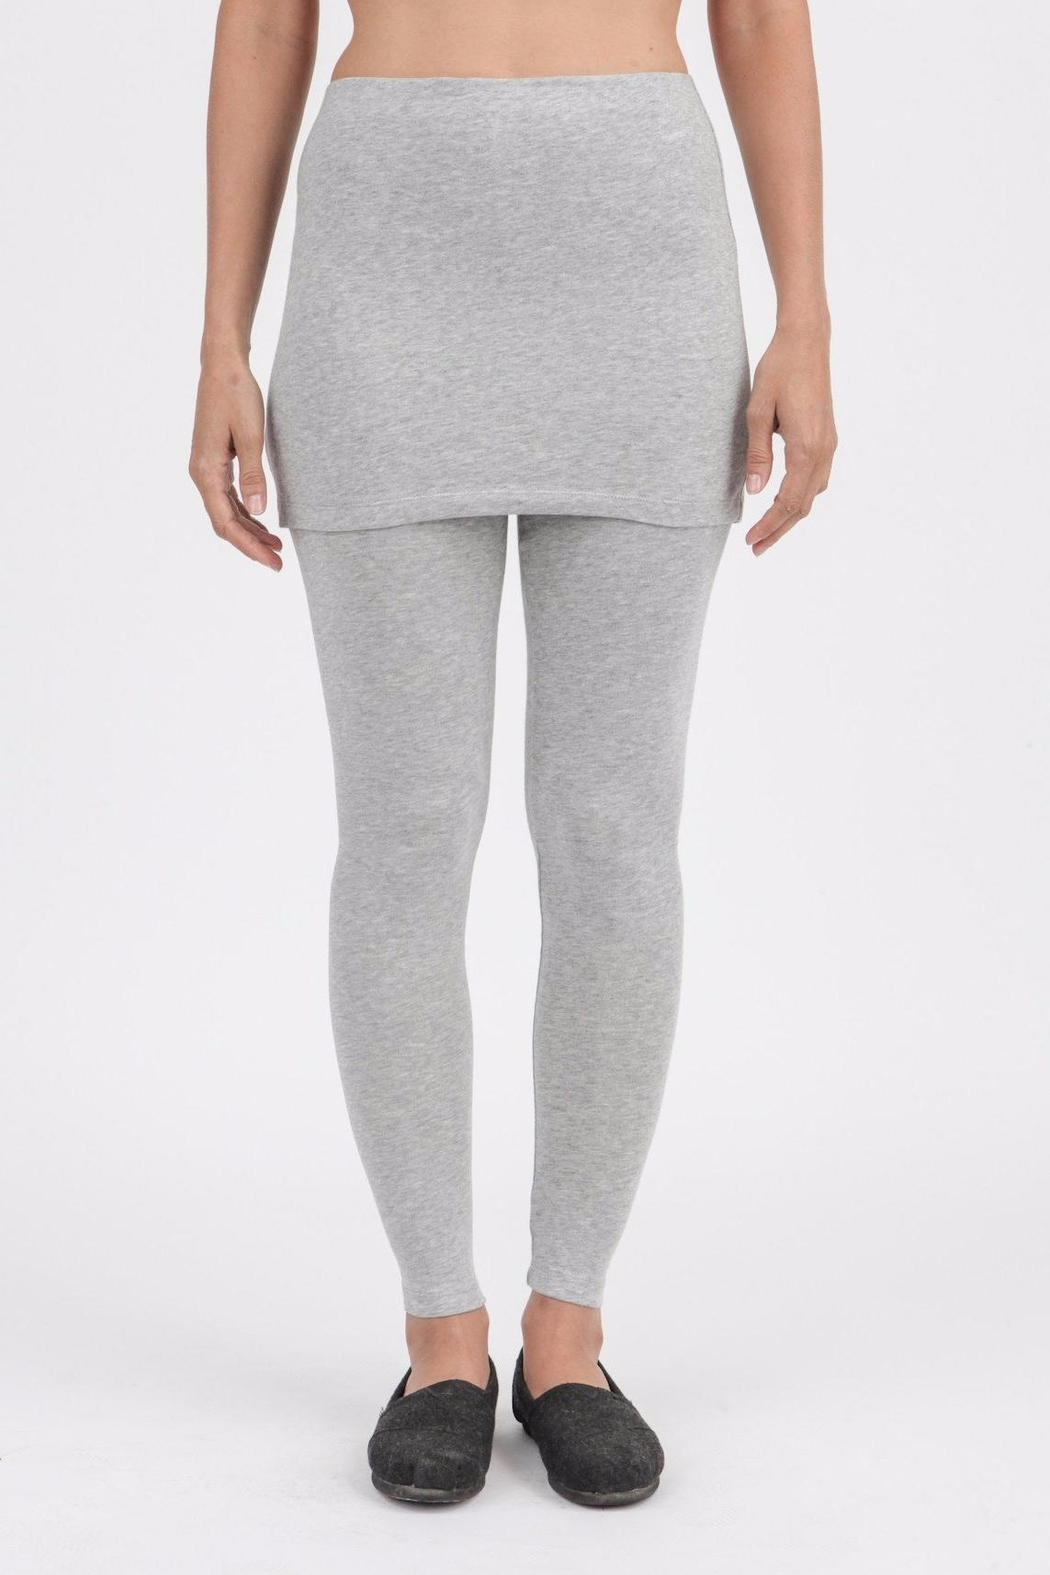 Articles of Society Susy Skirted Legging - Main Image